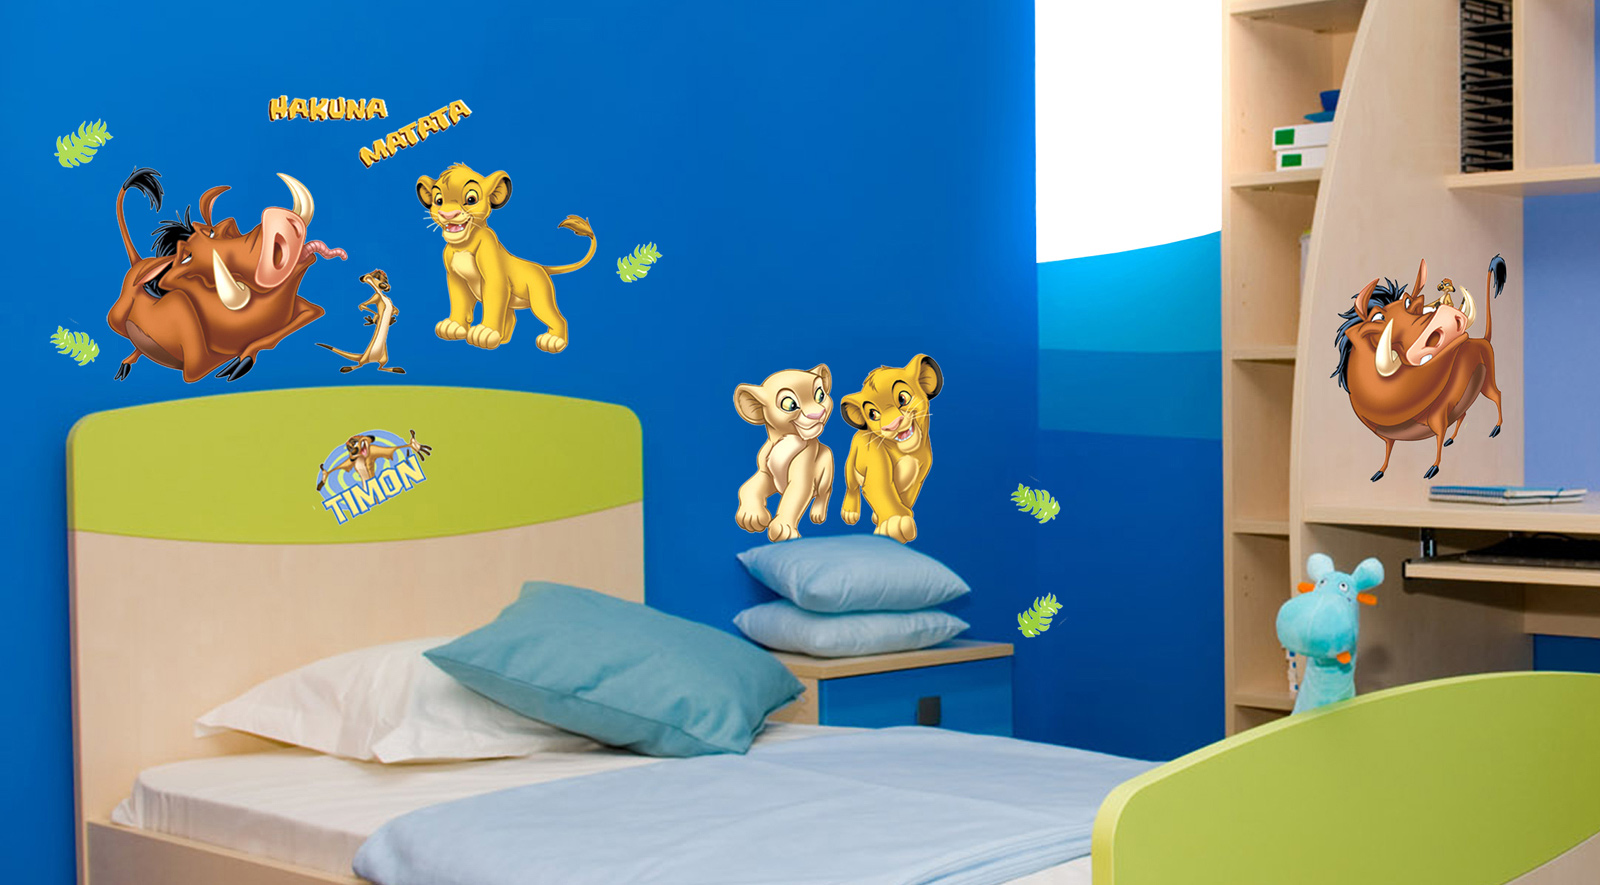 decofun disney the lion king wall stickers price in india 21 may 2018 compare decofun disney. Black Bedroom Furniture Sets. Home Design Ideas